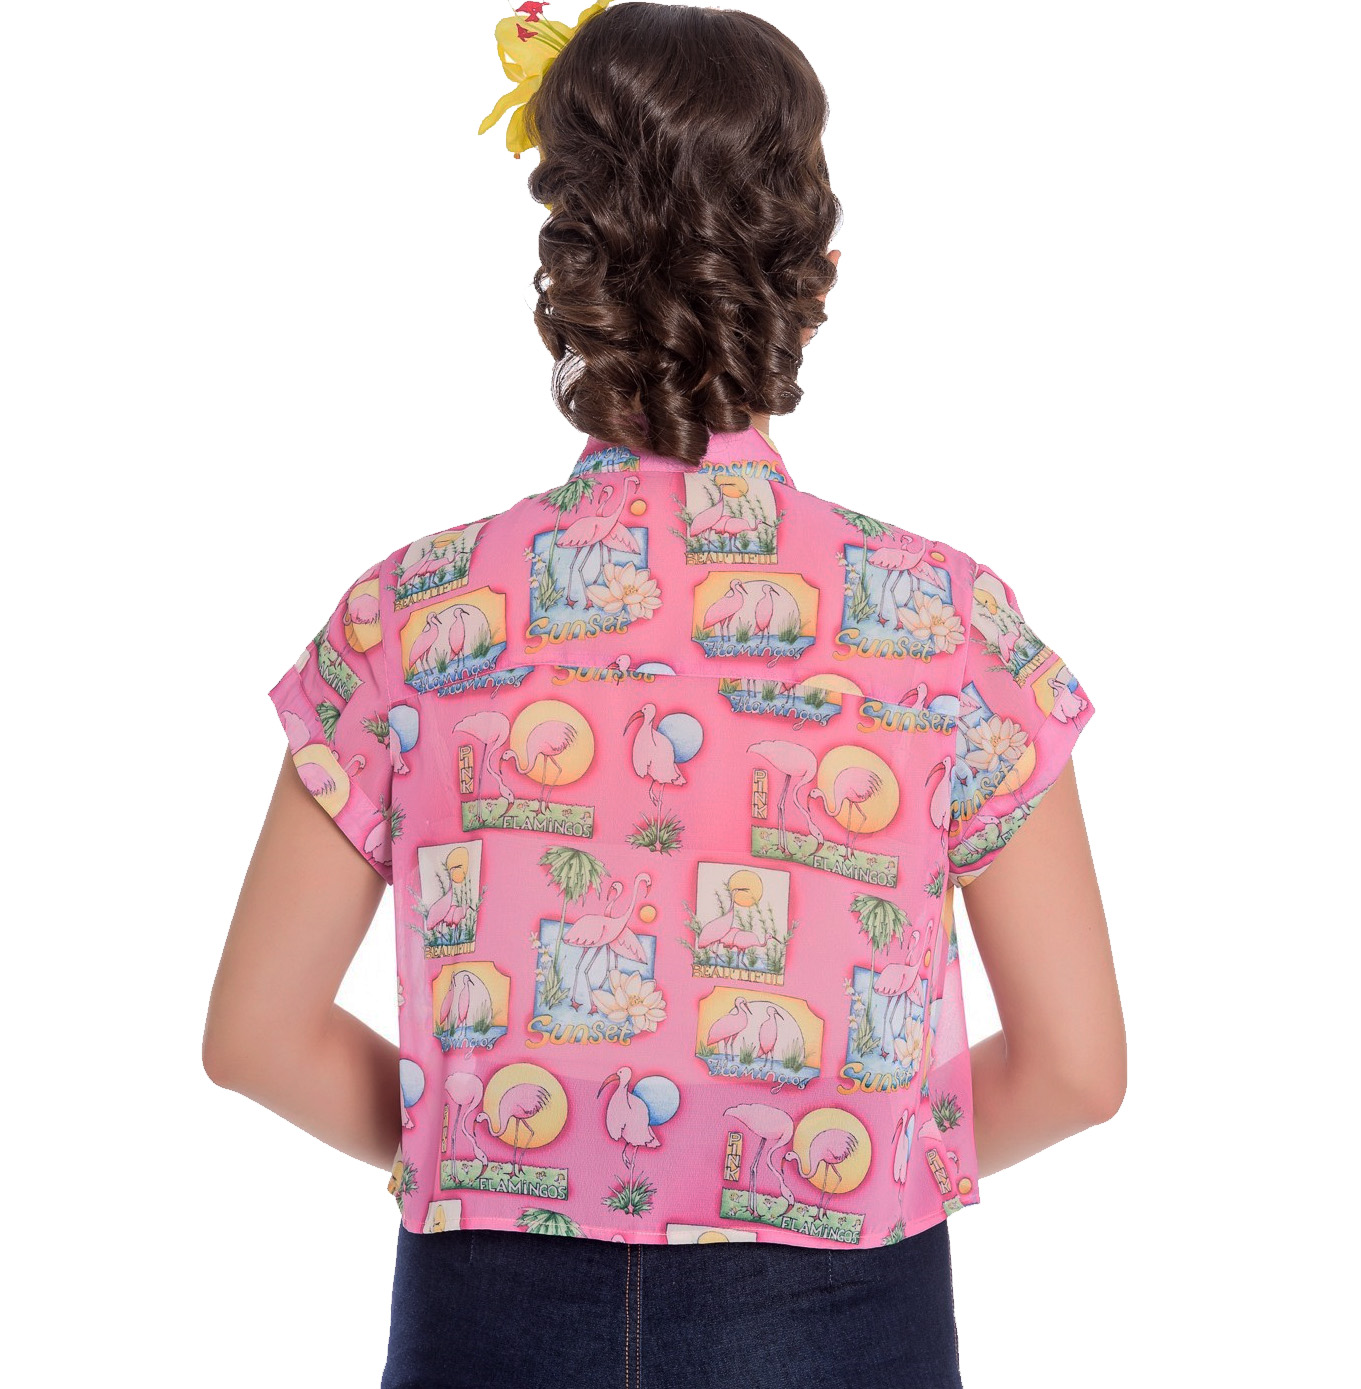 Hell-Bunny-50s-Retro-Top-Pink-Flamingo-MAXINE-Cropped-Blouse-Shirt-All-Sizes thumbnail 17